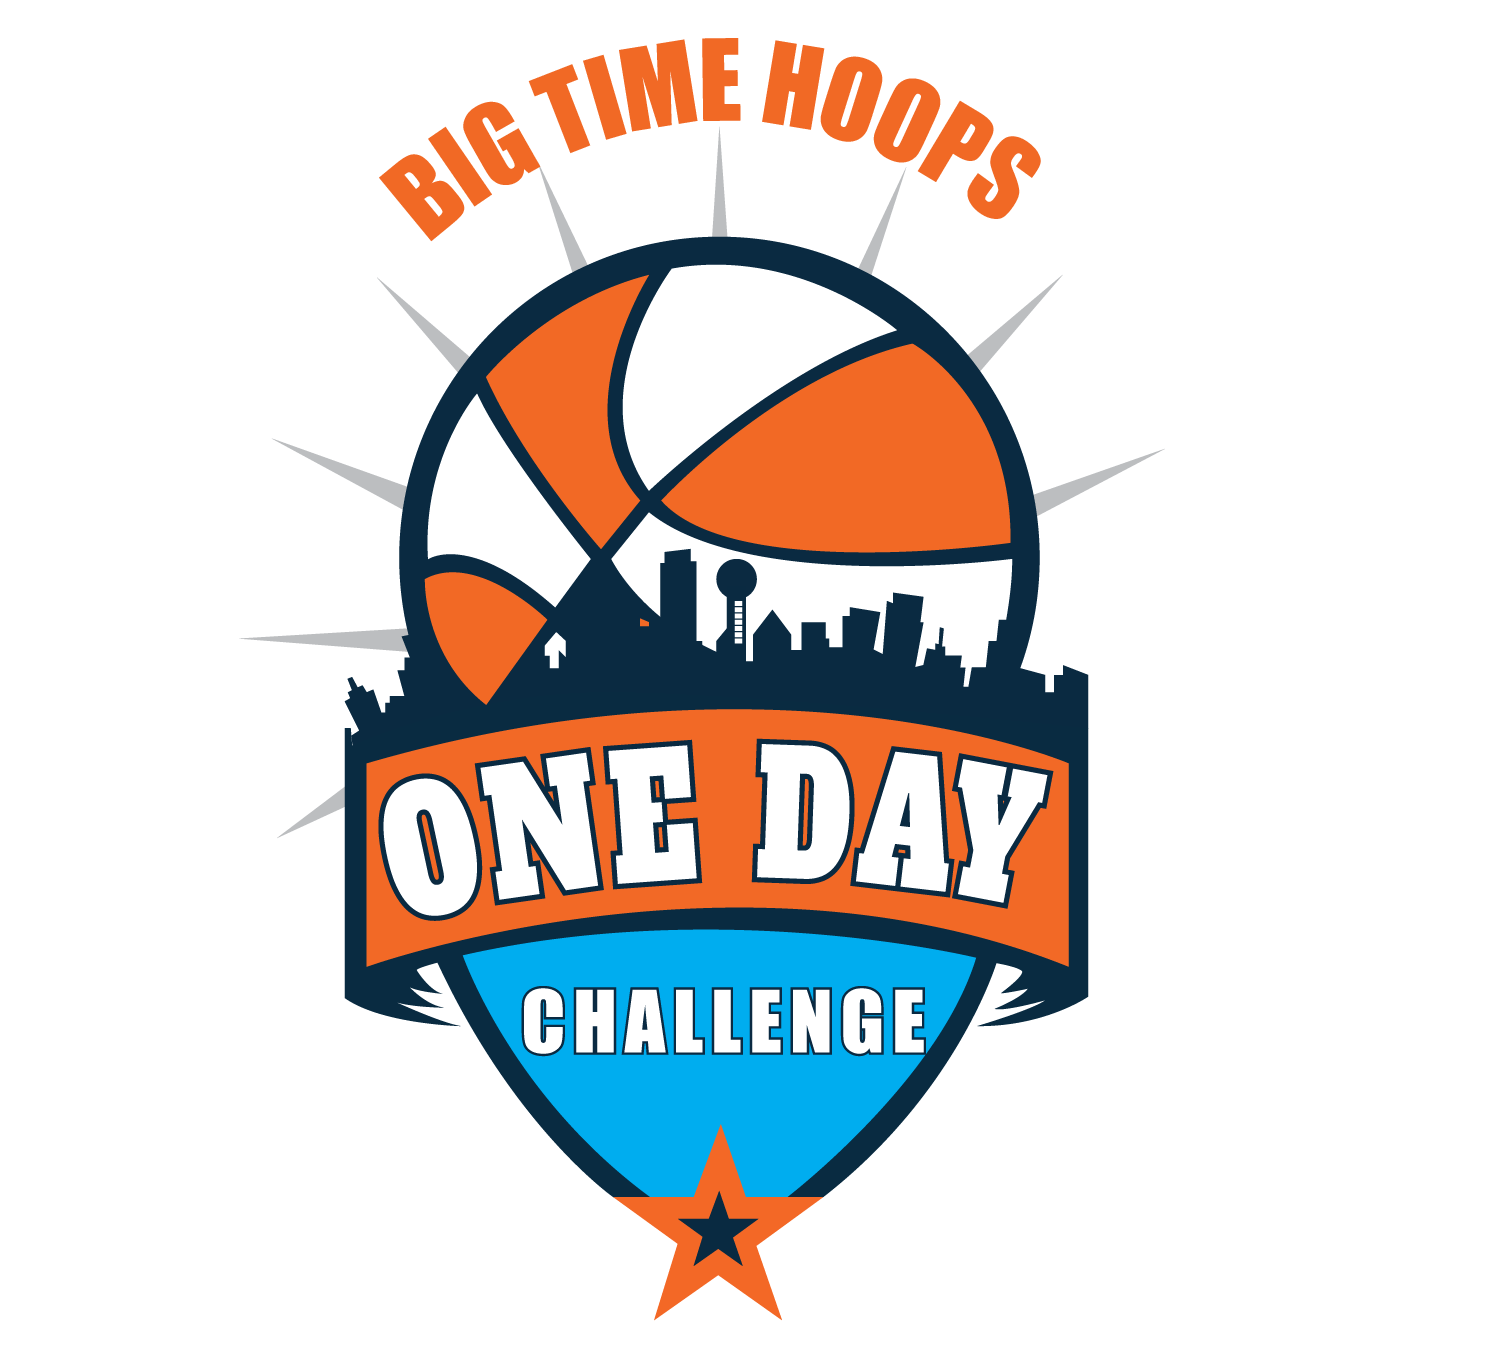 One Day Challenge – Duncanville